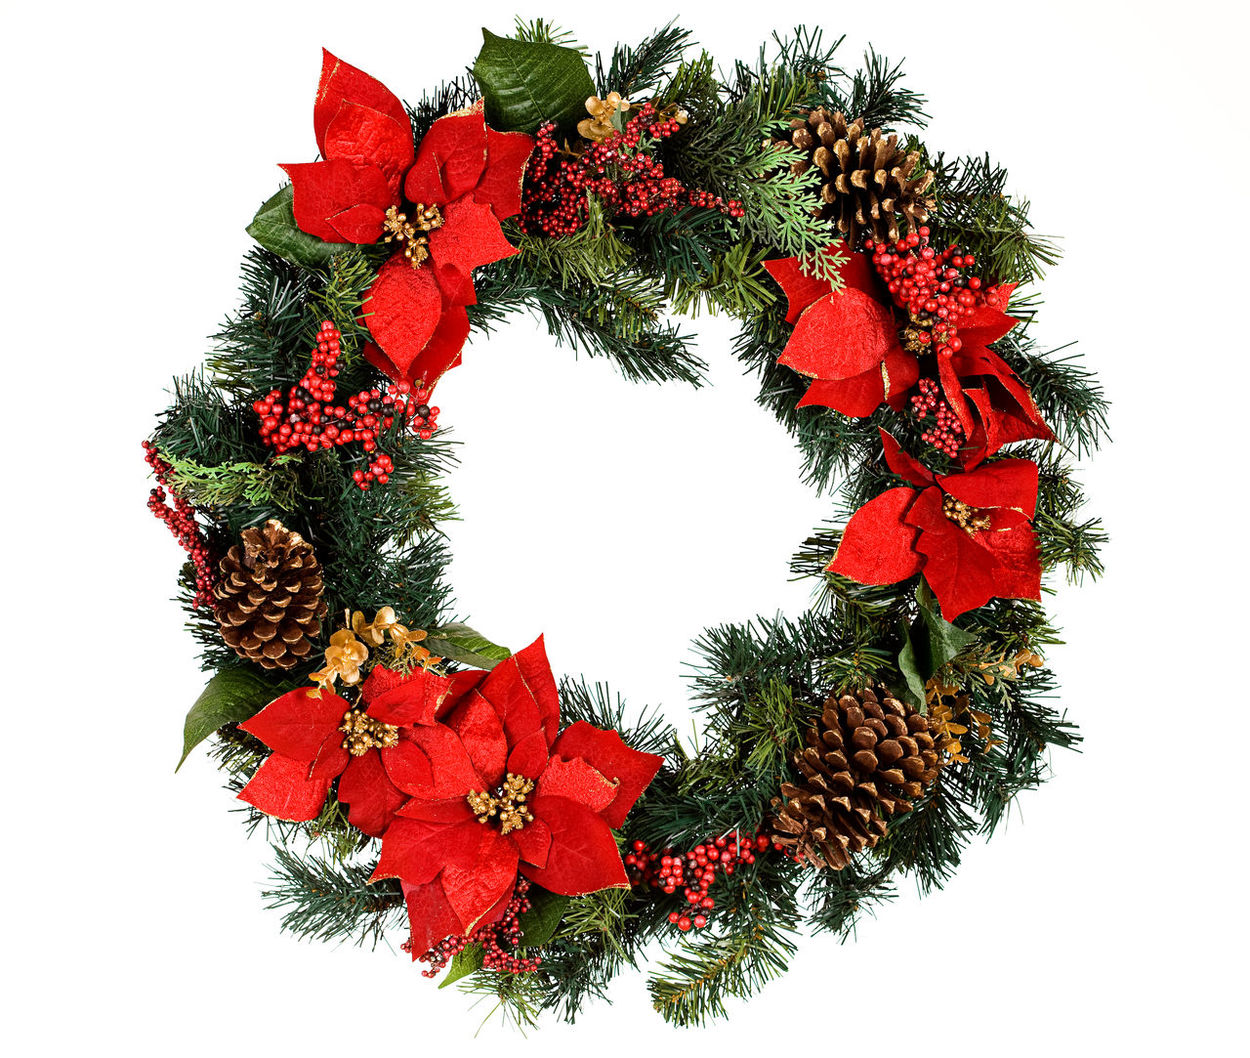 Isolated Christmas wreath series, with and without snow. Christmas Christmas Wreath Isolated Christmas Decoration Cut Out Decoration Decorations Festive Isolated White Background Plant Studio Shot White Background Wreath